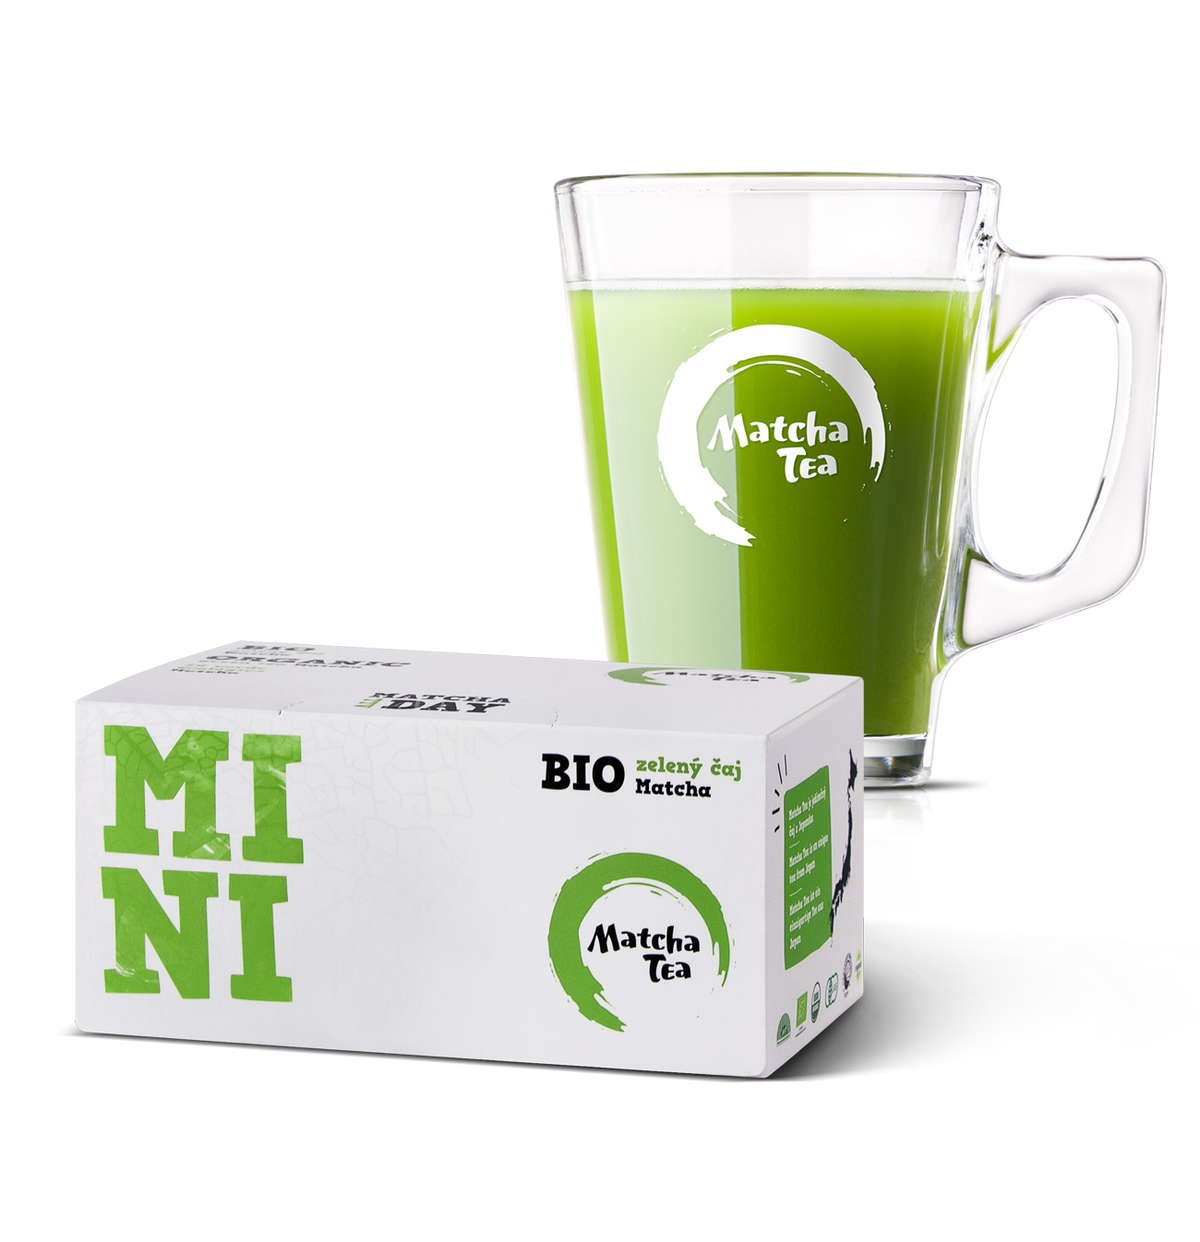 bio-matcha-tea-product